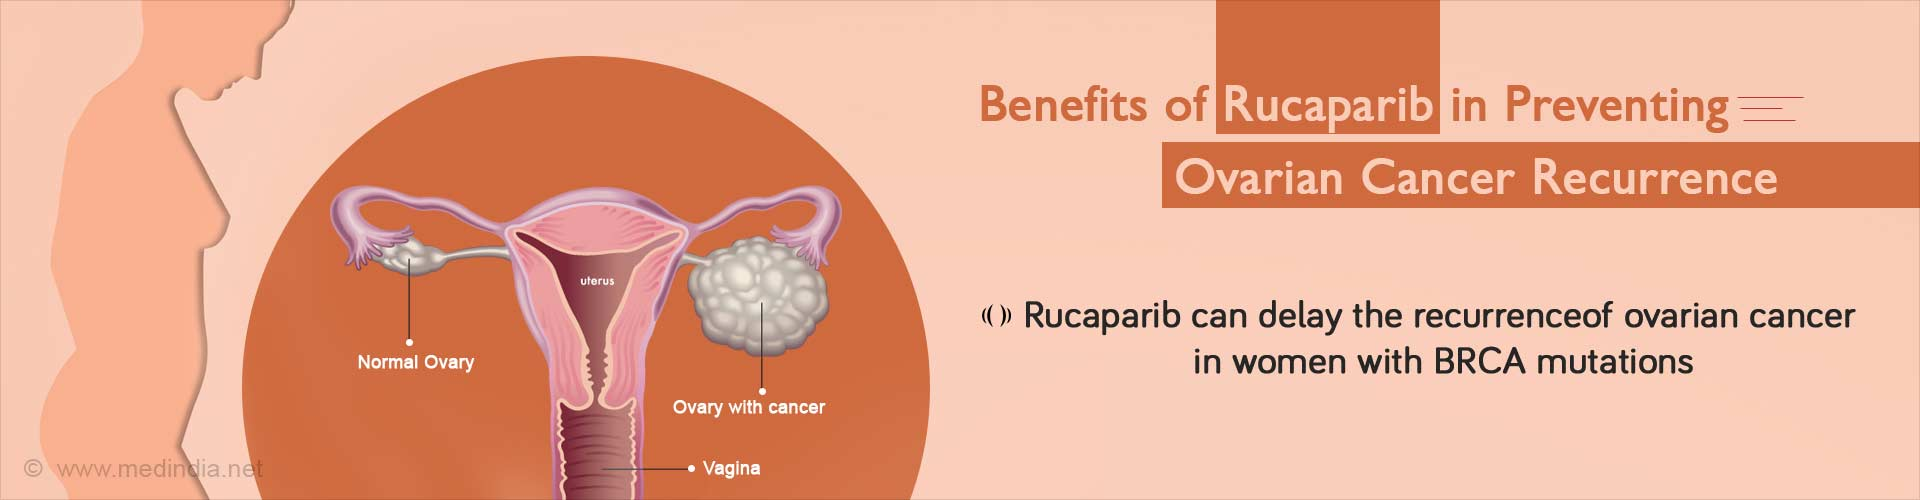 Rucaparib Beneficial as Maintenance Treatment for Recurrent Ovarian Cancer